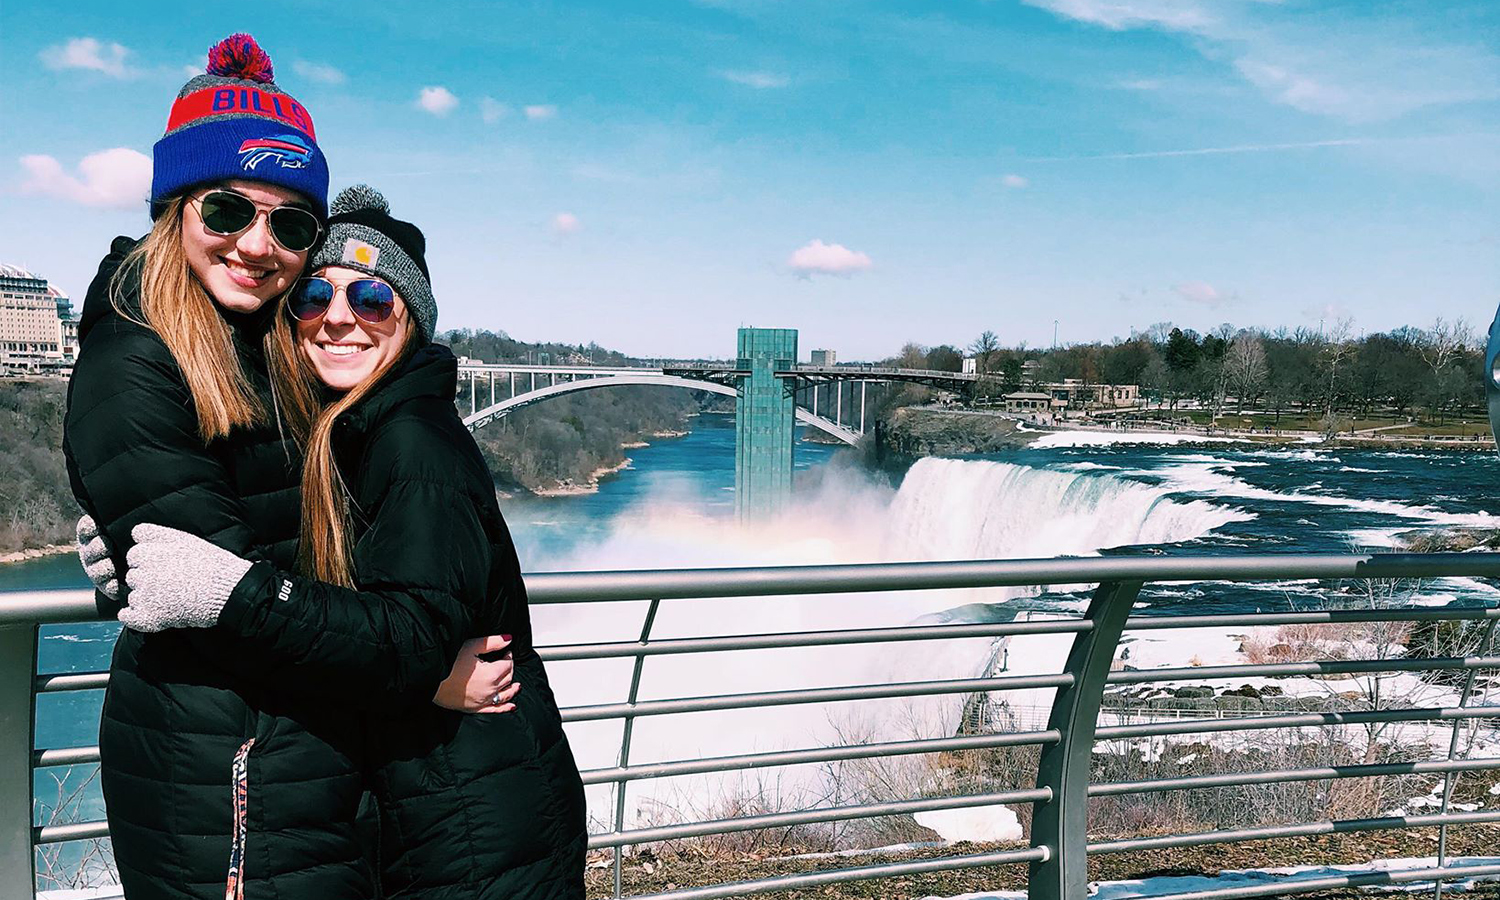 Ali Turner '20 and Leah Trow '19 visit Niagara Falls during Spring break.